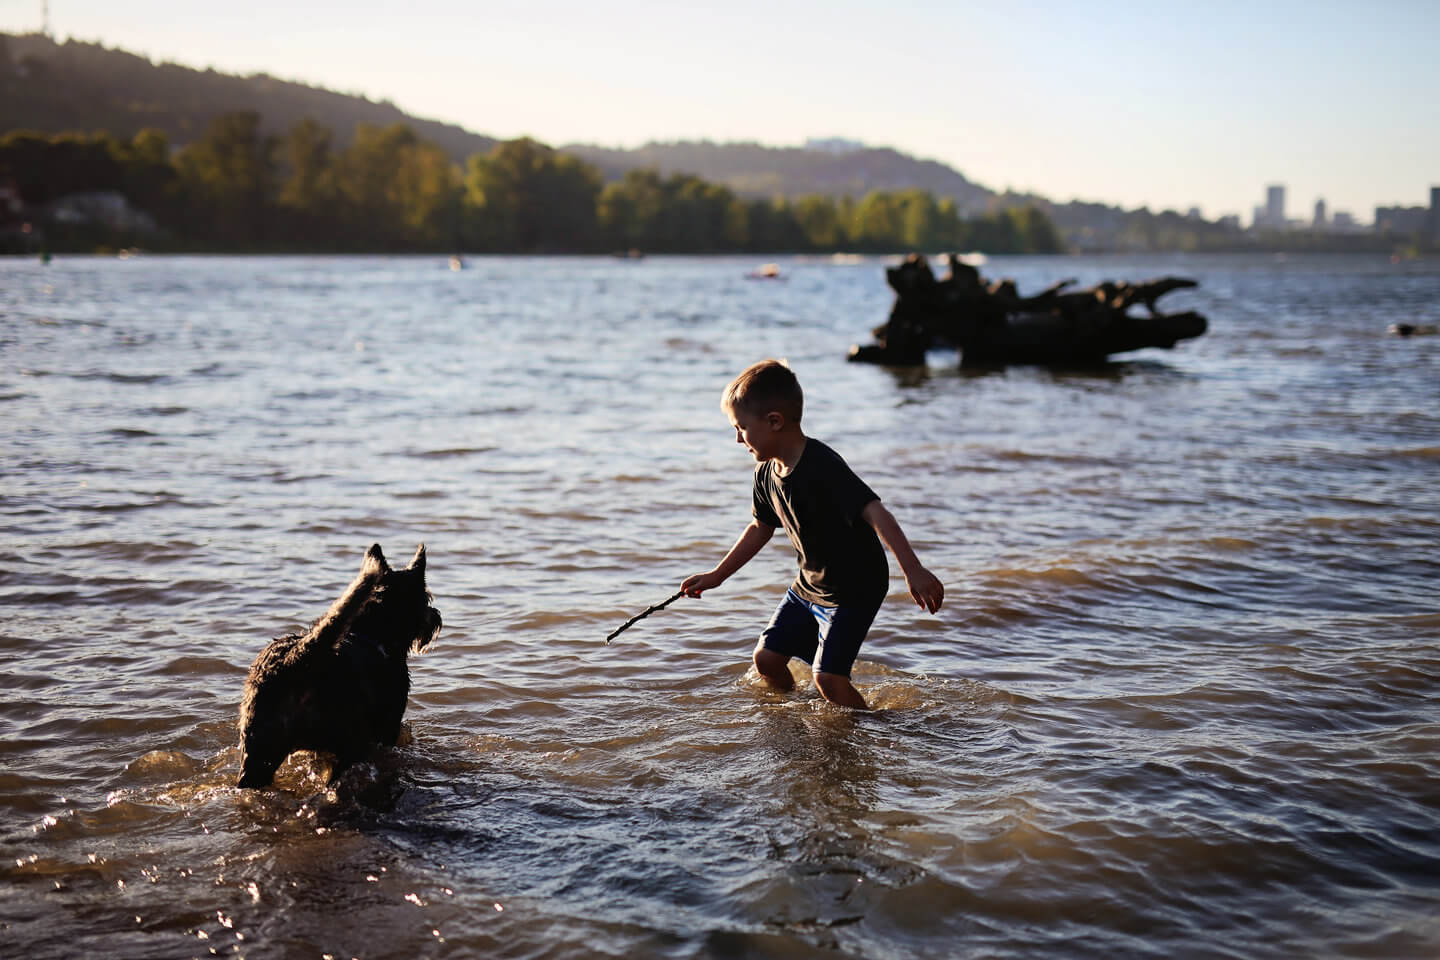 Boy and his dog enjoying time at the Willamette River in Portland, Oregon